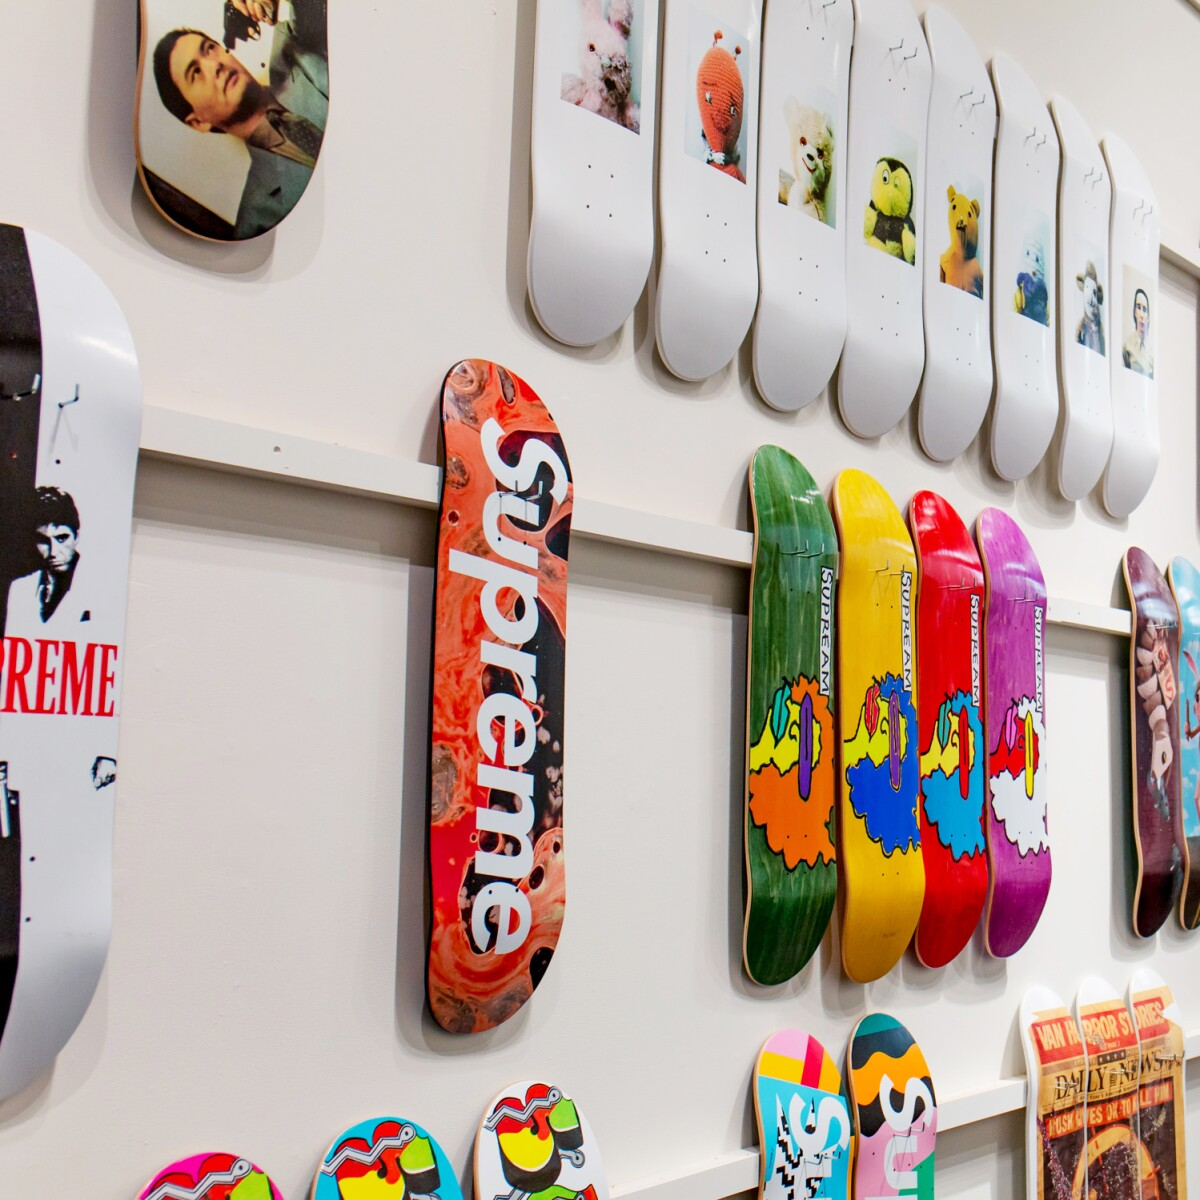 eef2da68 Supreme Skateboards | The Entire Collection | Sotheby's